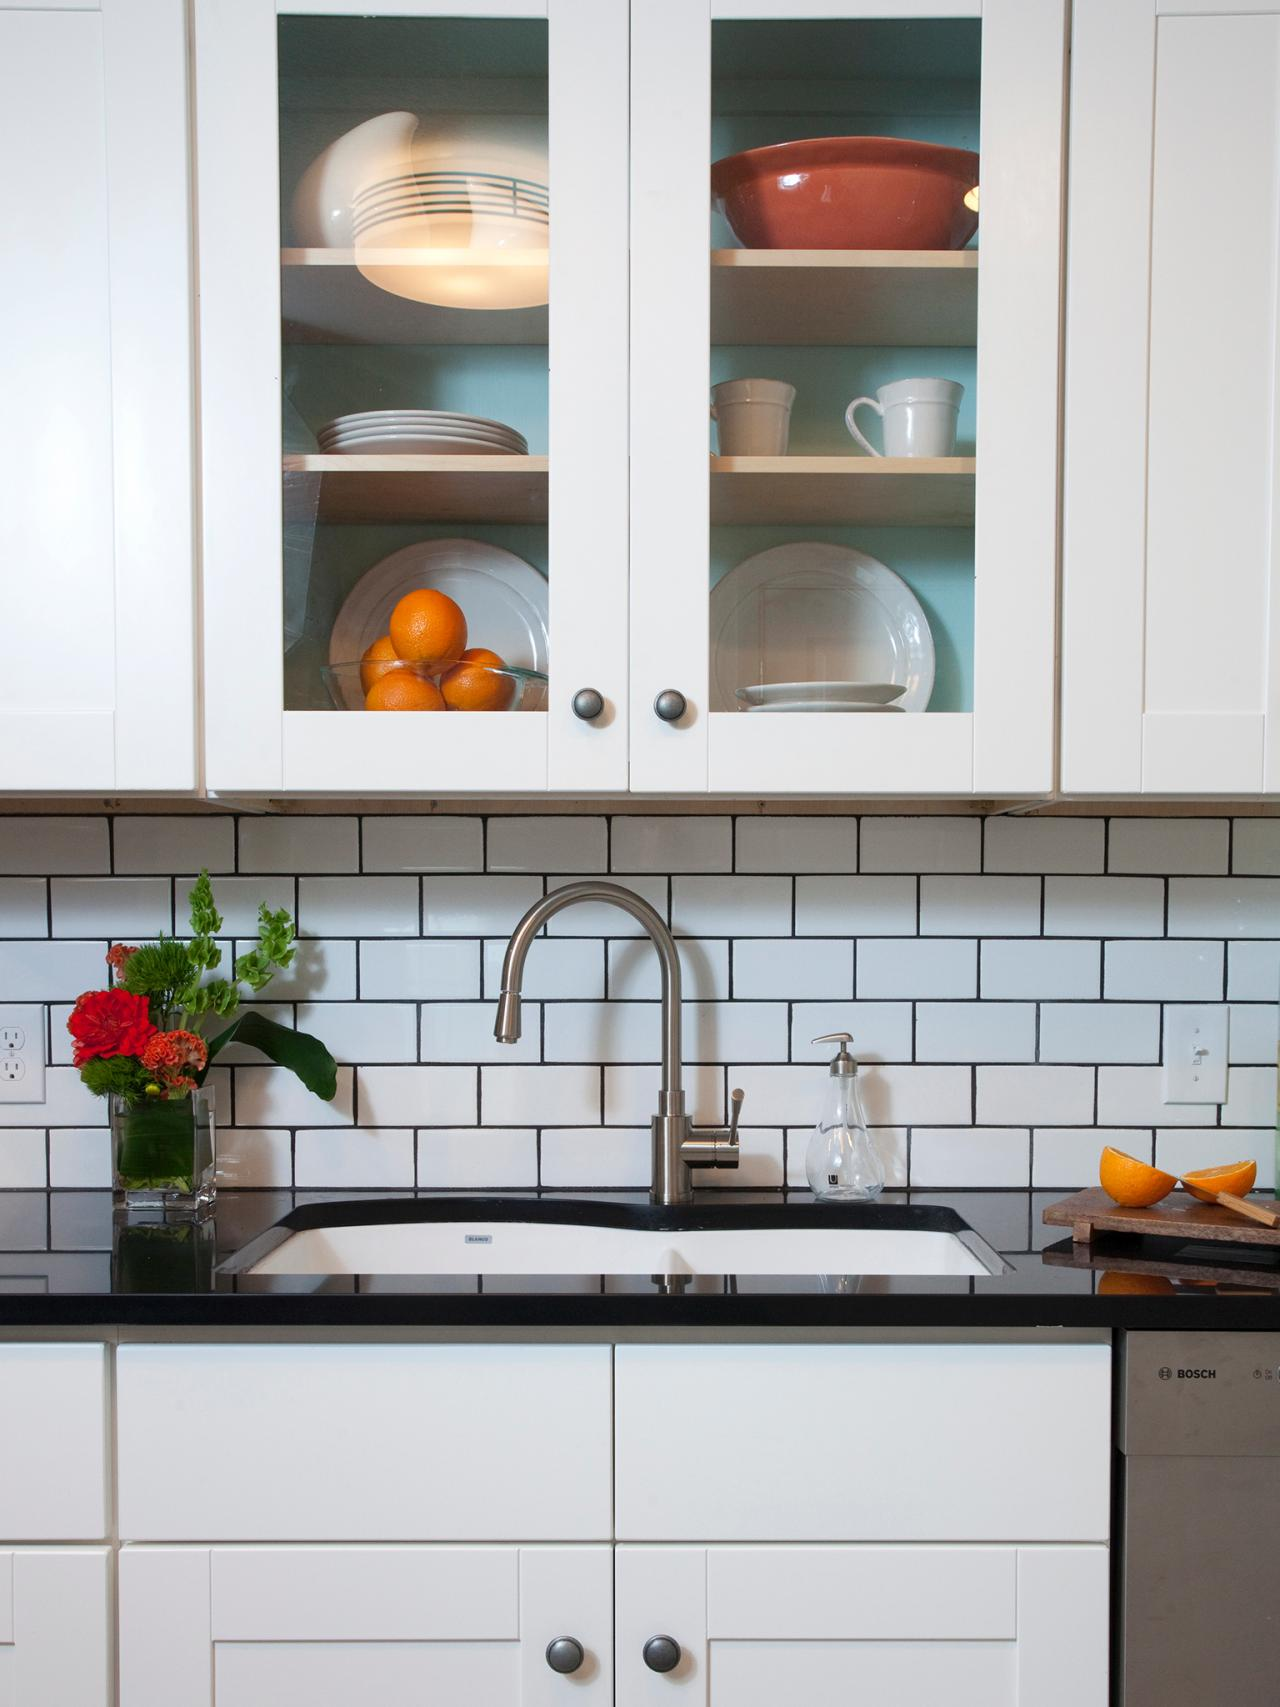 About grout in keeping with the classic white subway tile for Kitchen tiles pictures